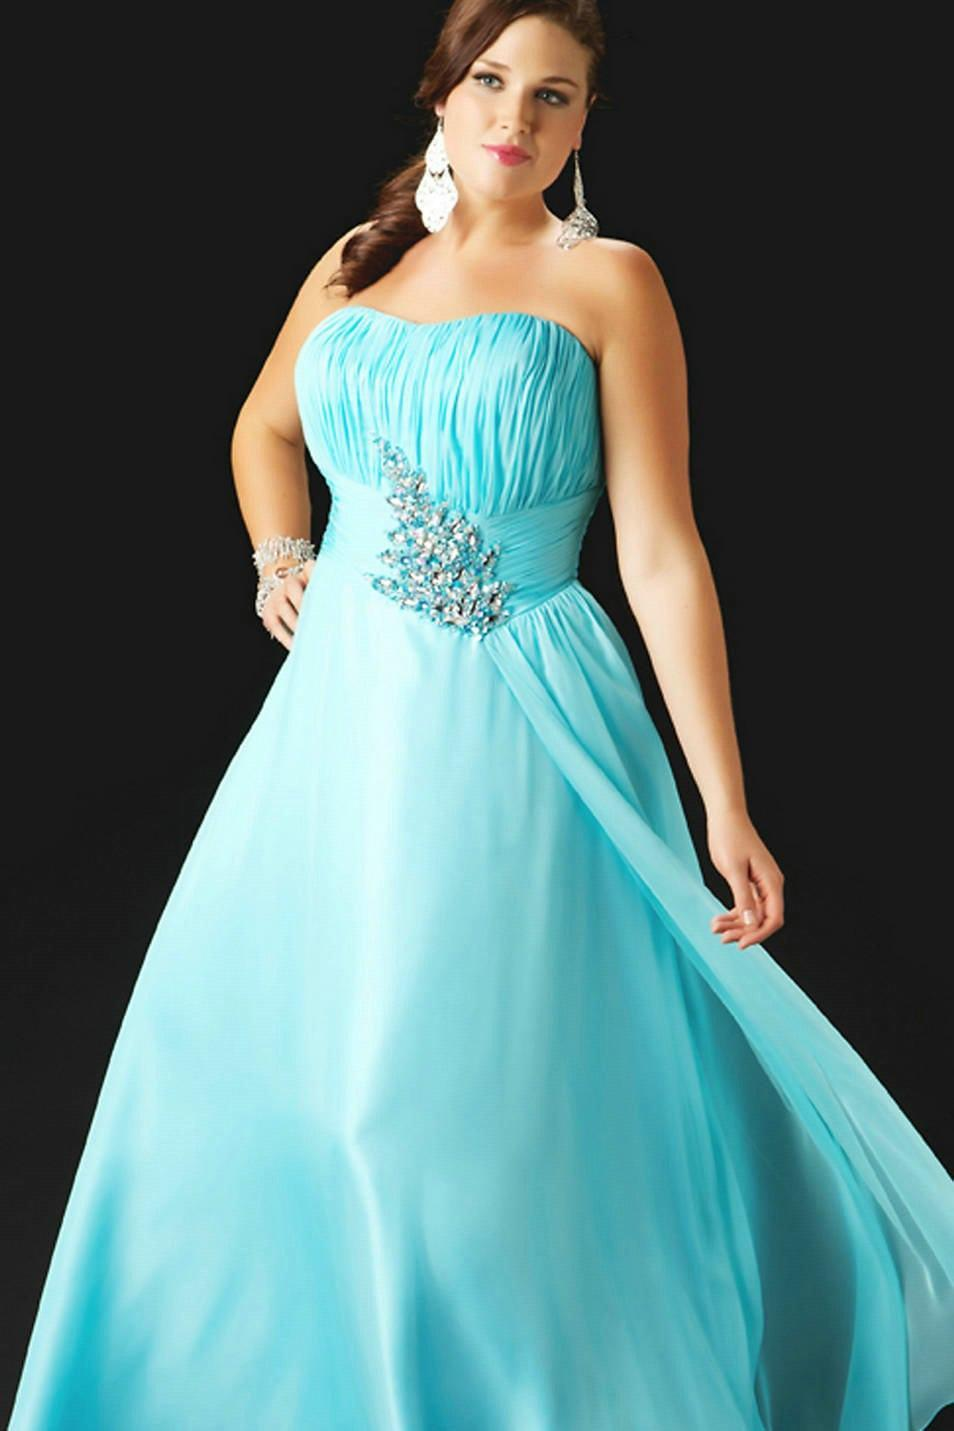 Plus Size Ball Gowns Prom Dresses - Long Dresses Online